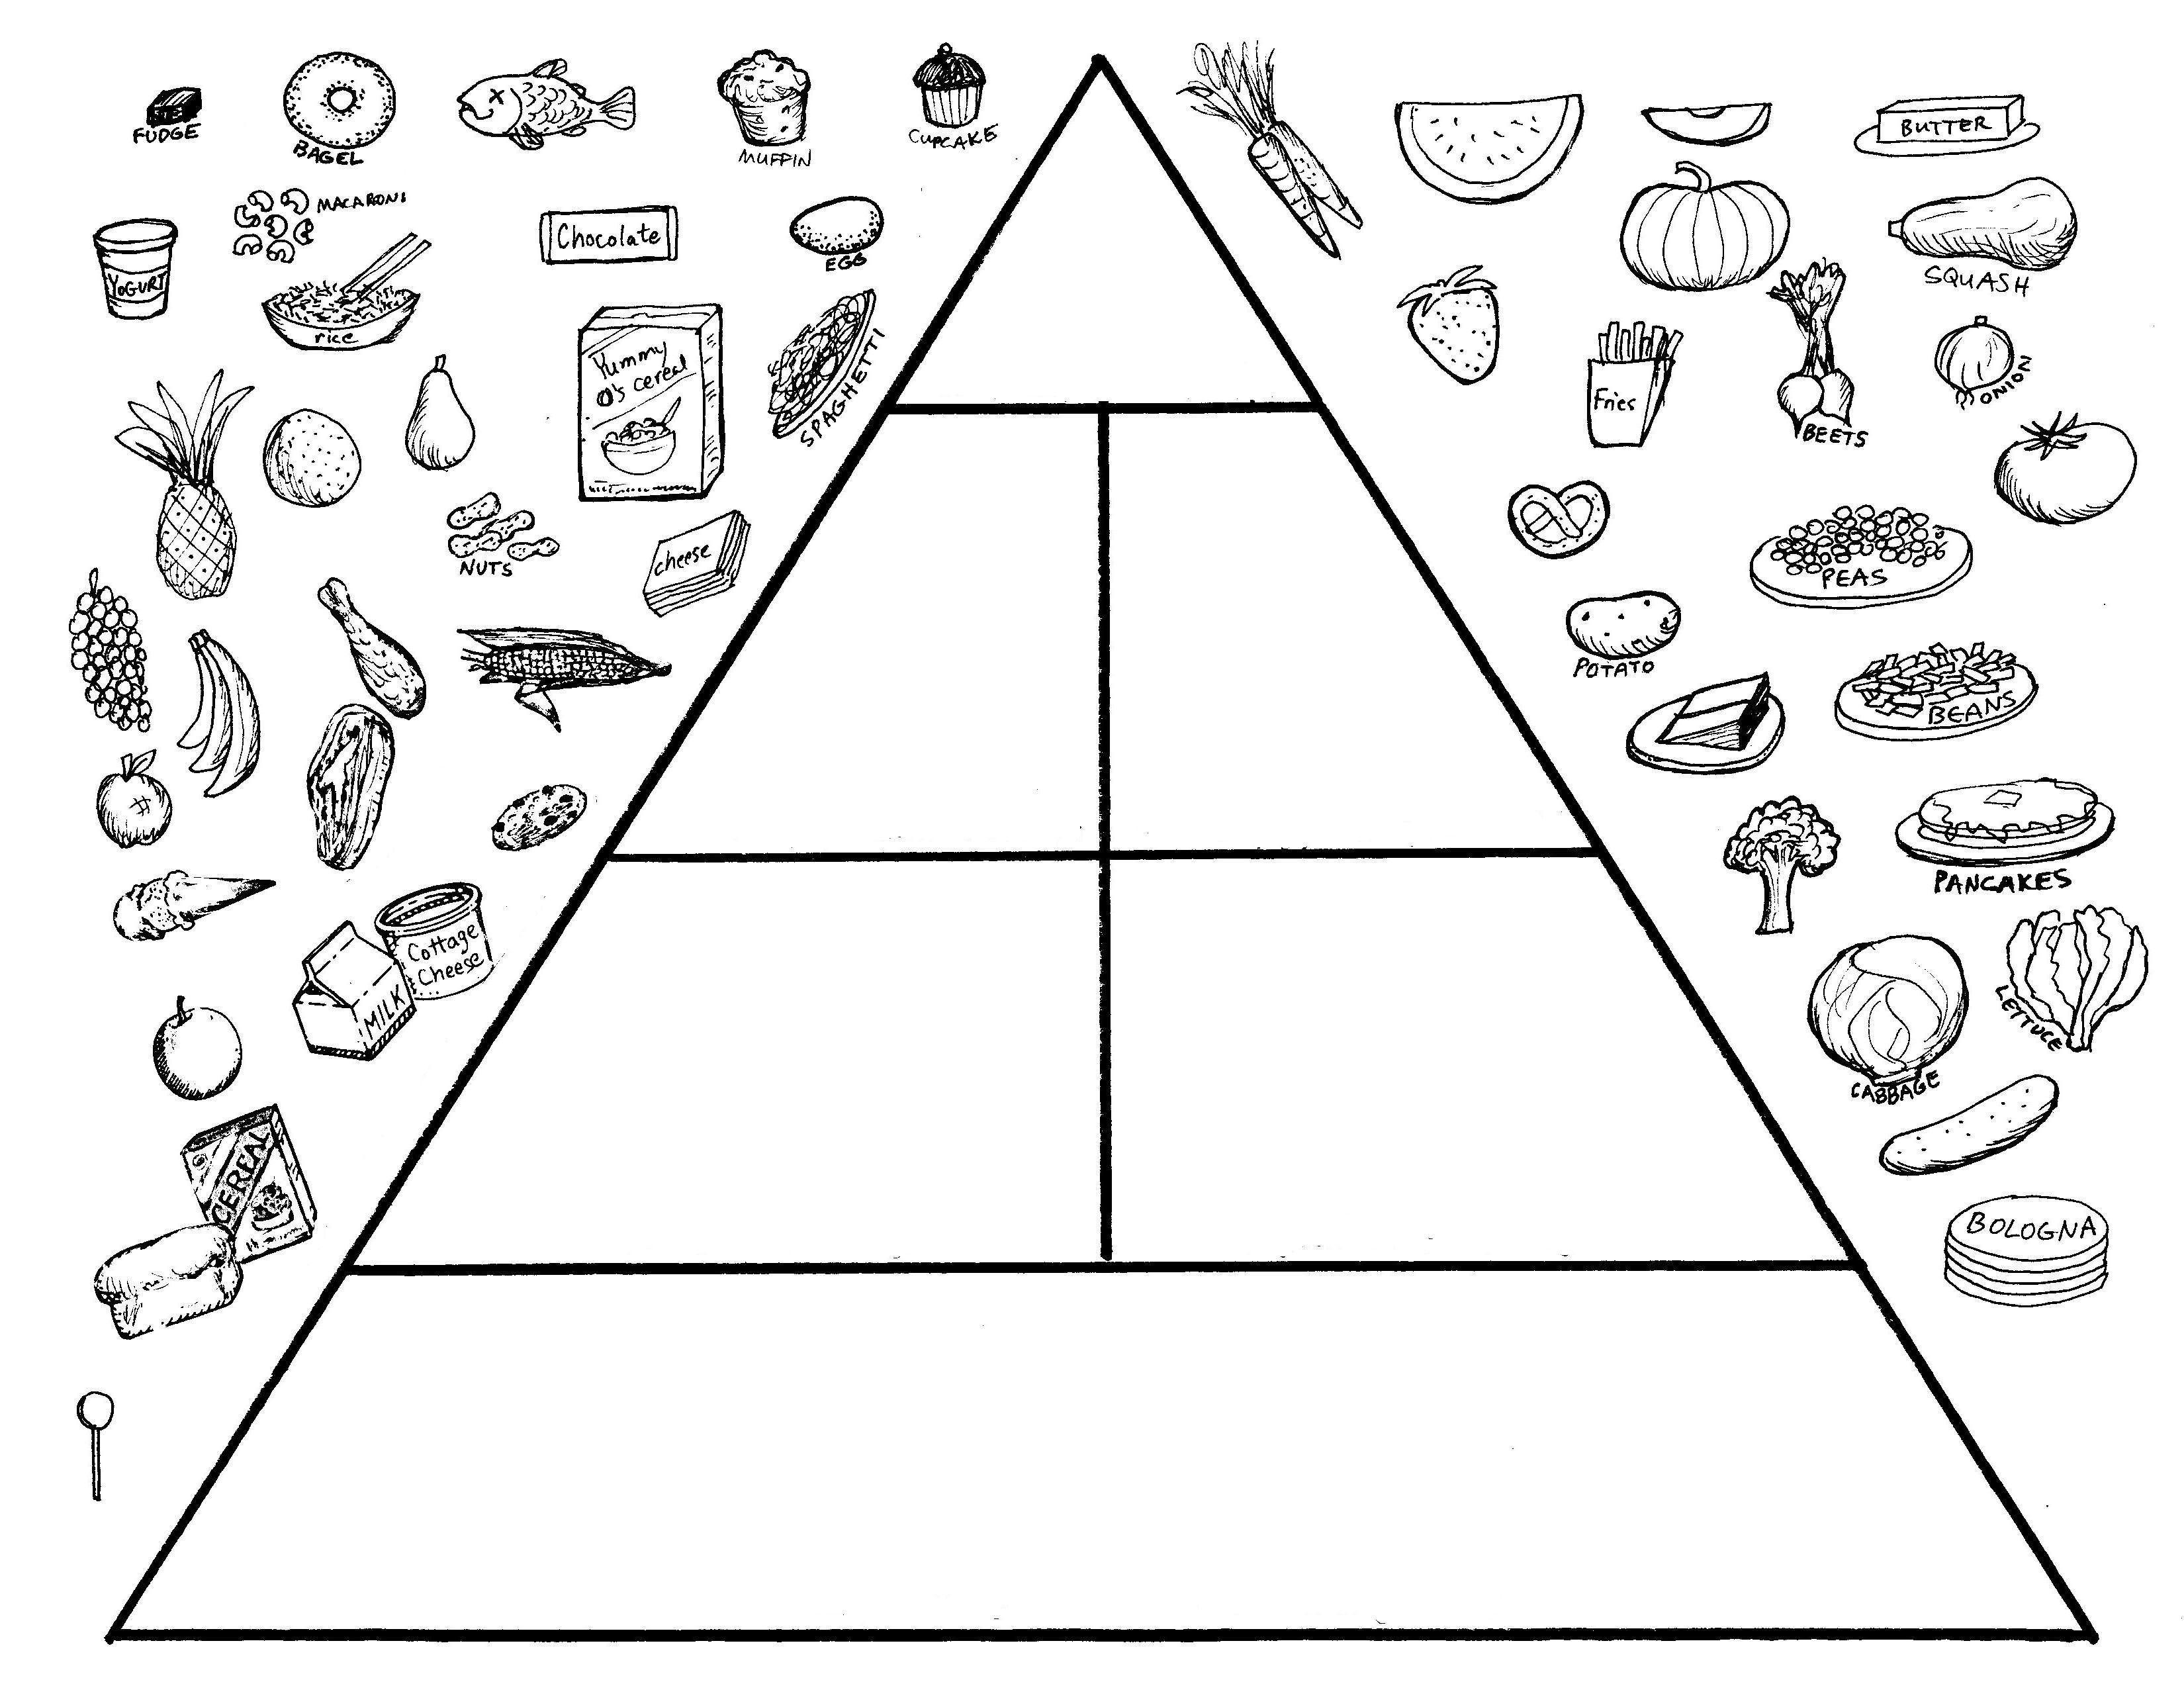 Food Pyramid Coloring Page George Washington Worksheets Kindergarten  Google Search .